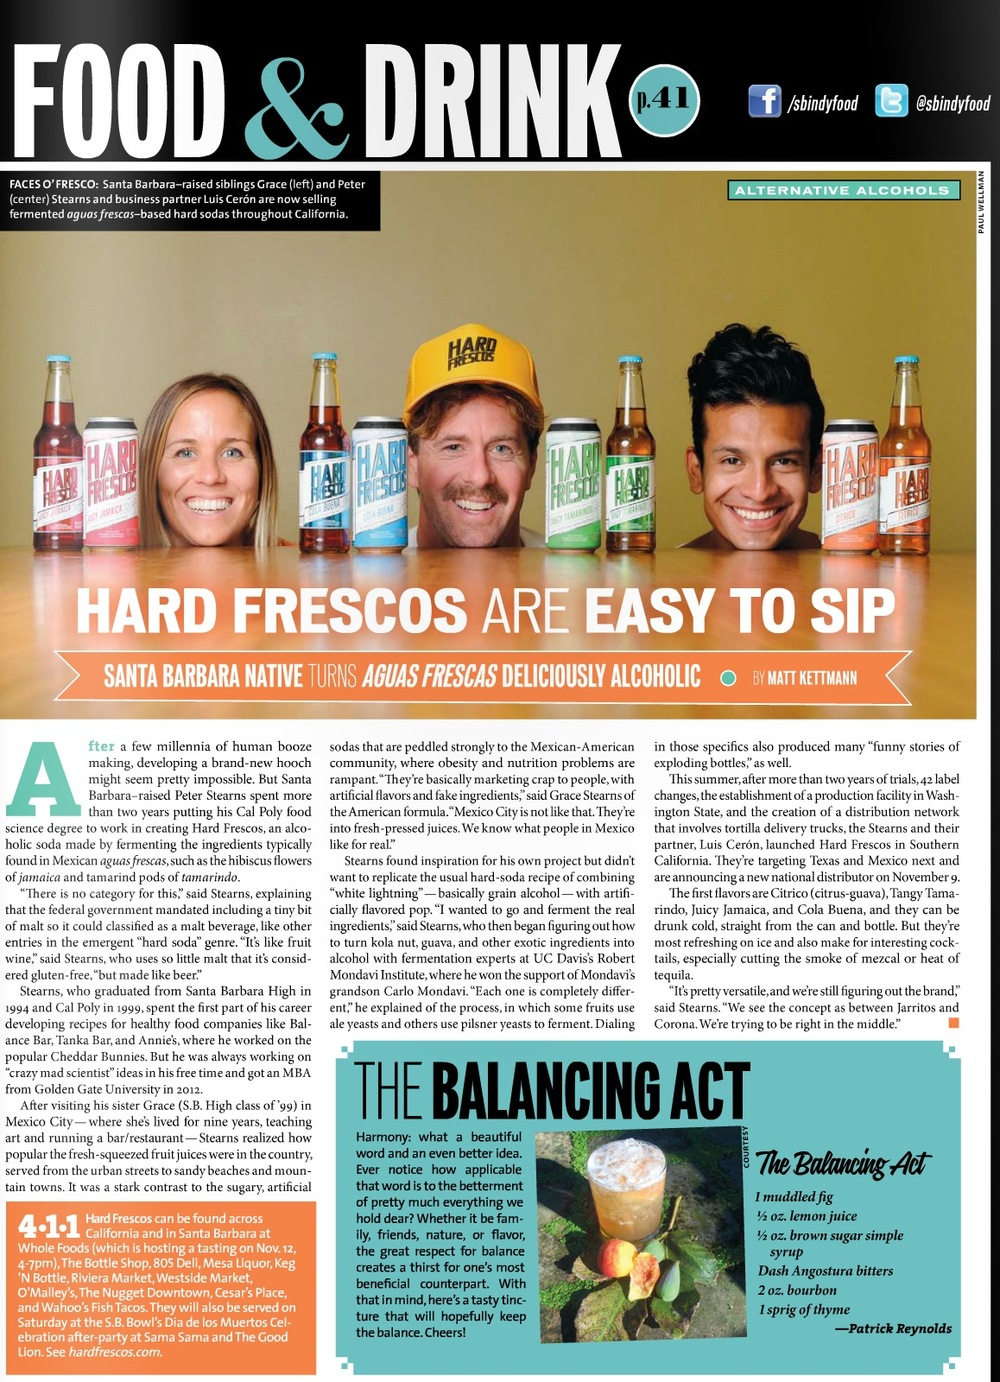 HARD FRESCOS FEATURED IN THE NOVEMBER ISSUE OF SANTA BARBARA INDEPENDENT. FLIP TO PAGE 41 IN THE DIGITAL ISSUE BY CLICKING HERE.